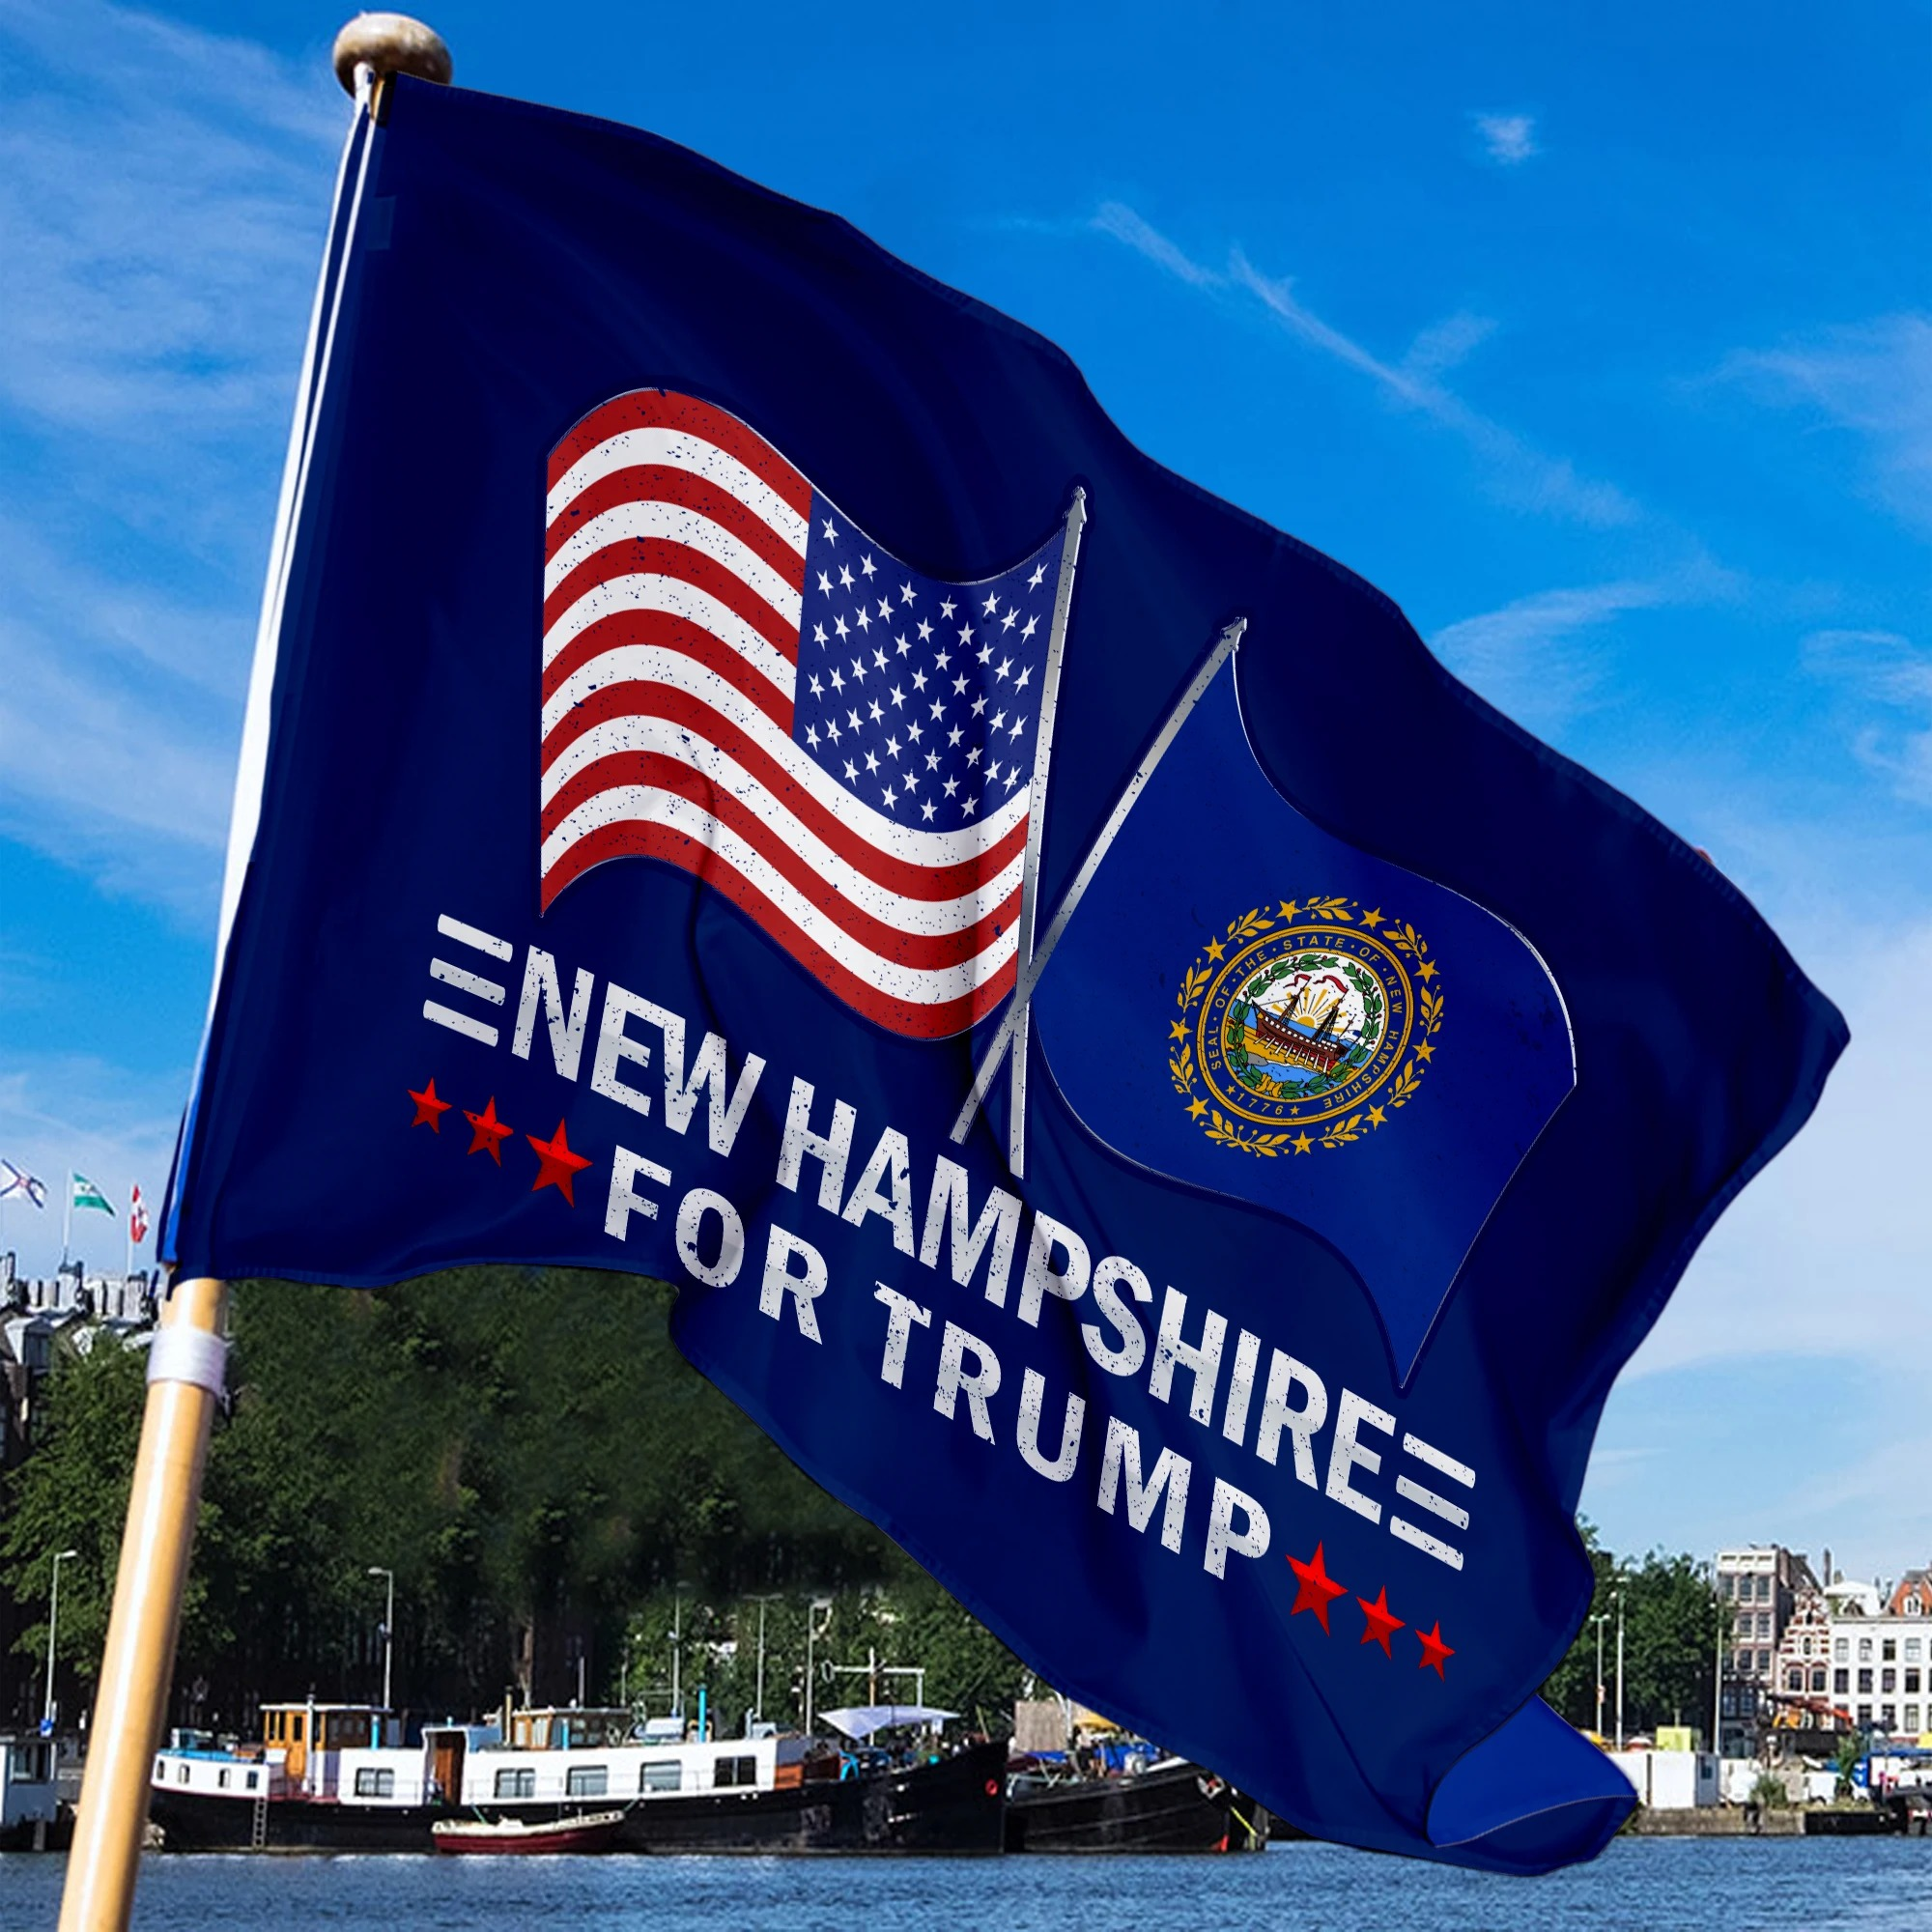 New Hampshire For Trump Flag